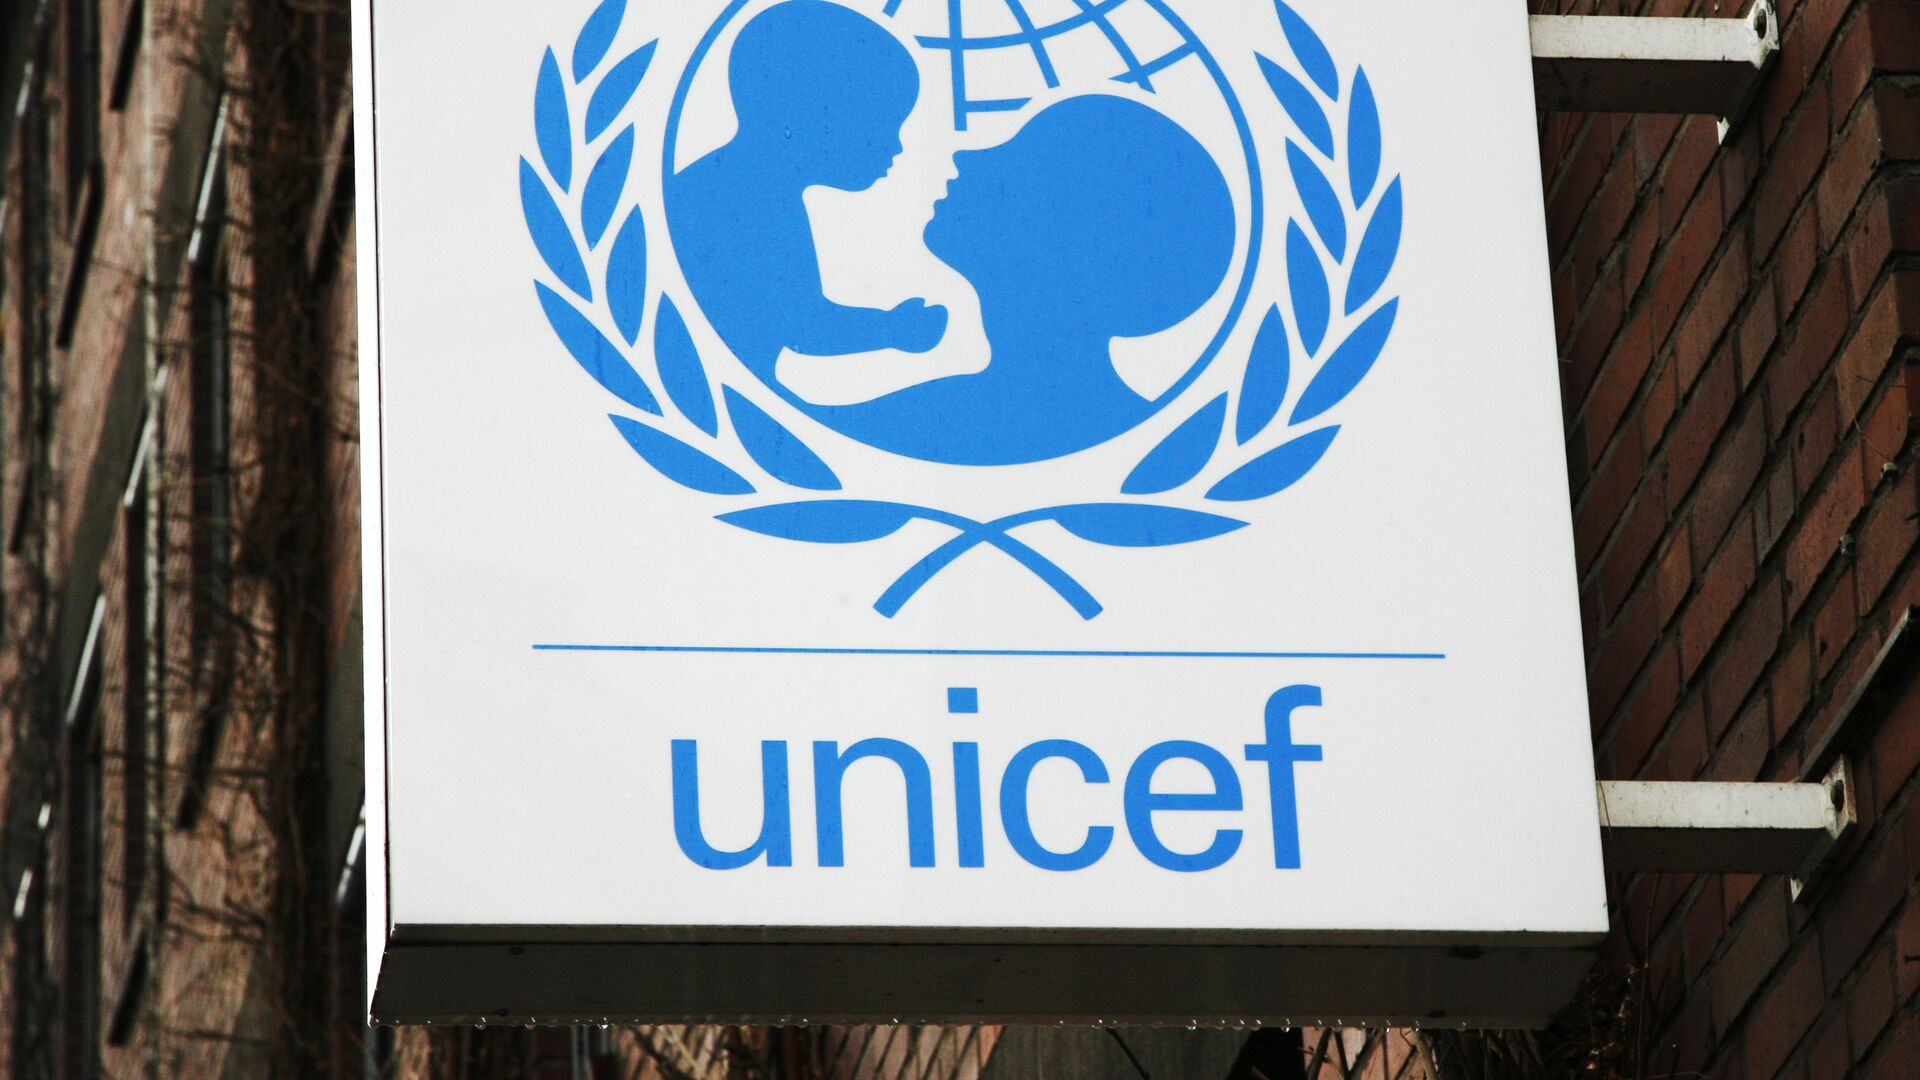 The UNICEF logo is seen at the German UNICEF headquarters in Cologne, Germany, on Feb. 5, 2008. - Sputnik Ελλάδα, 1920, 18.08.2021